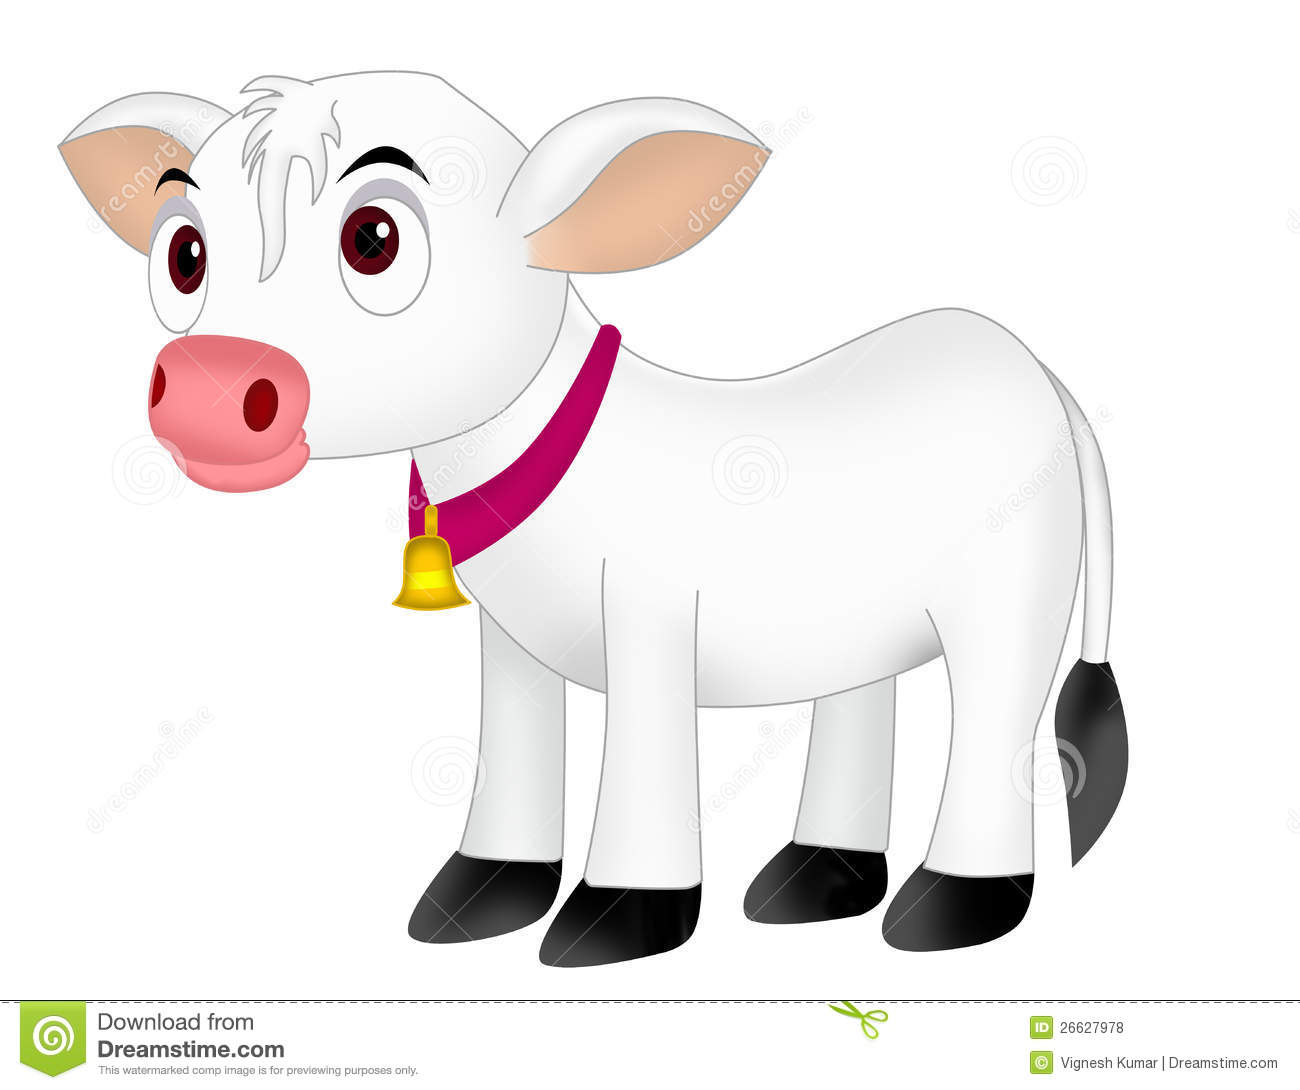 Cow calf stock illustration. Image of holstein, isolated ...